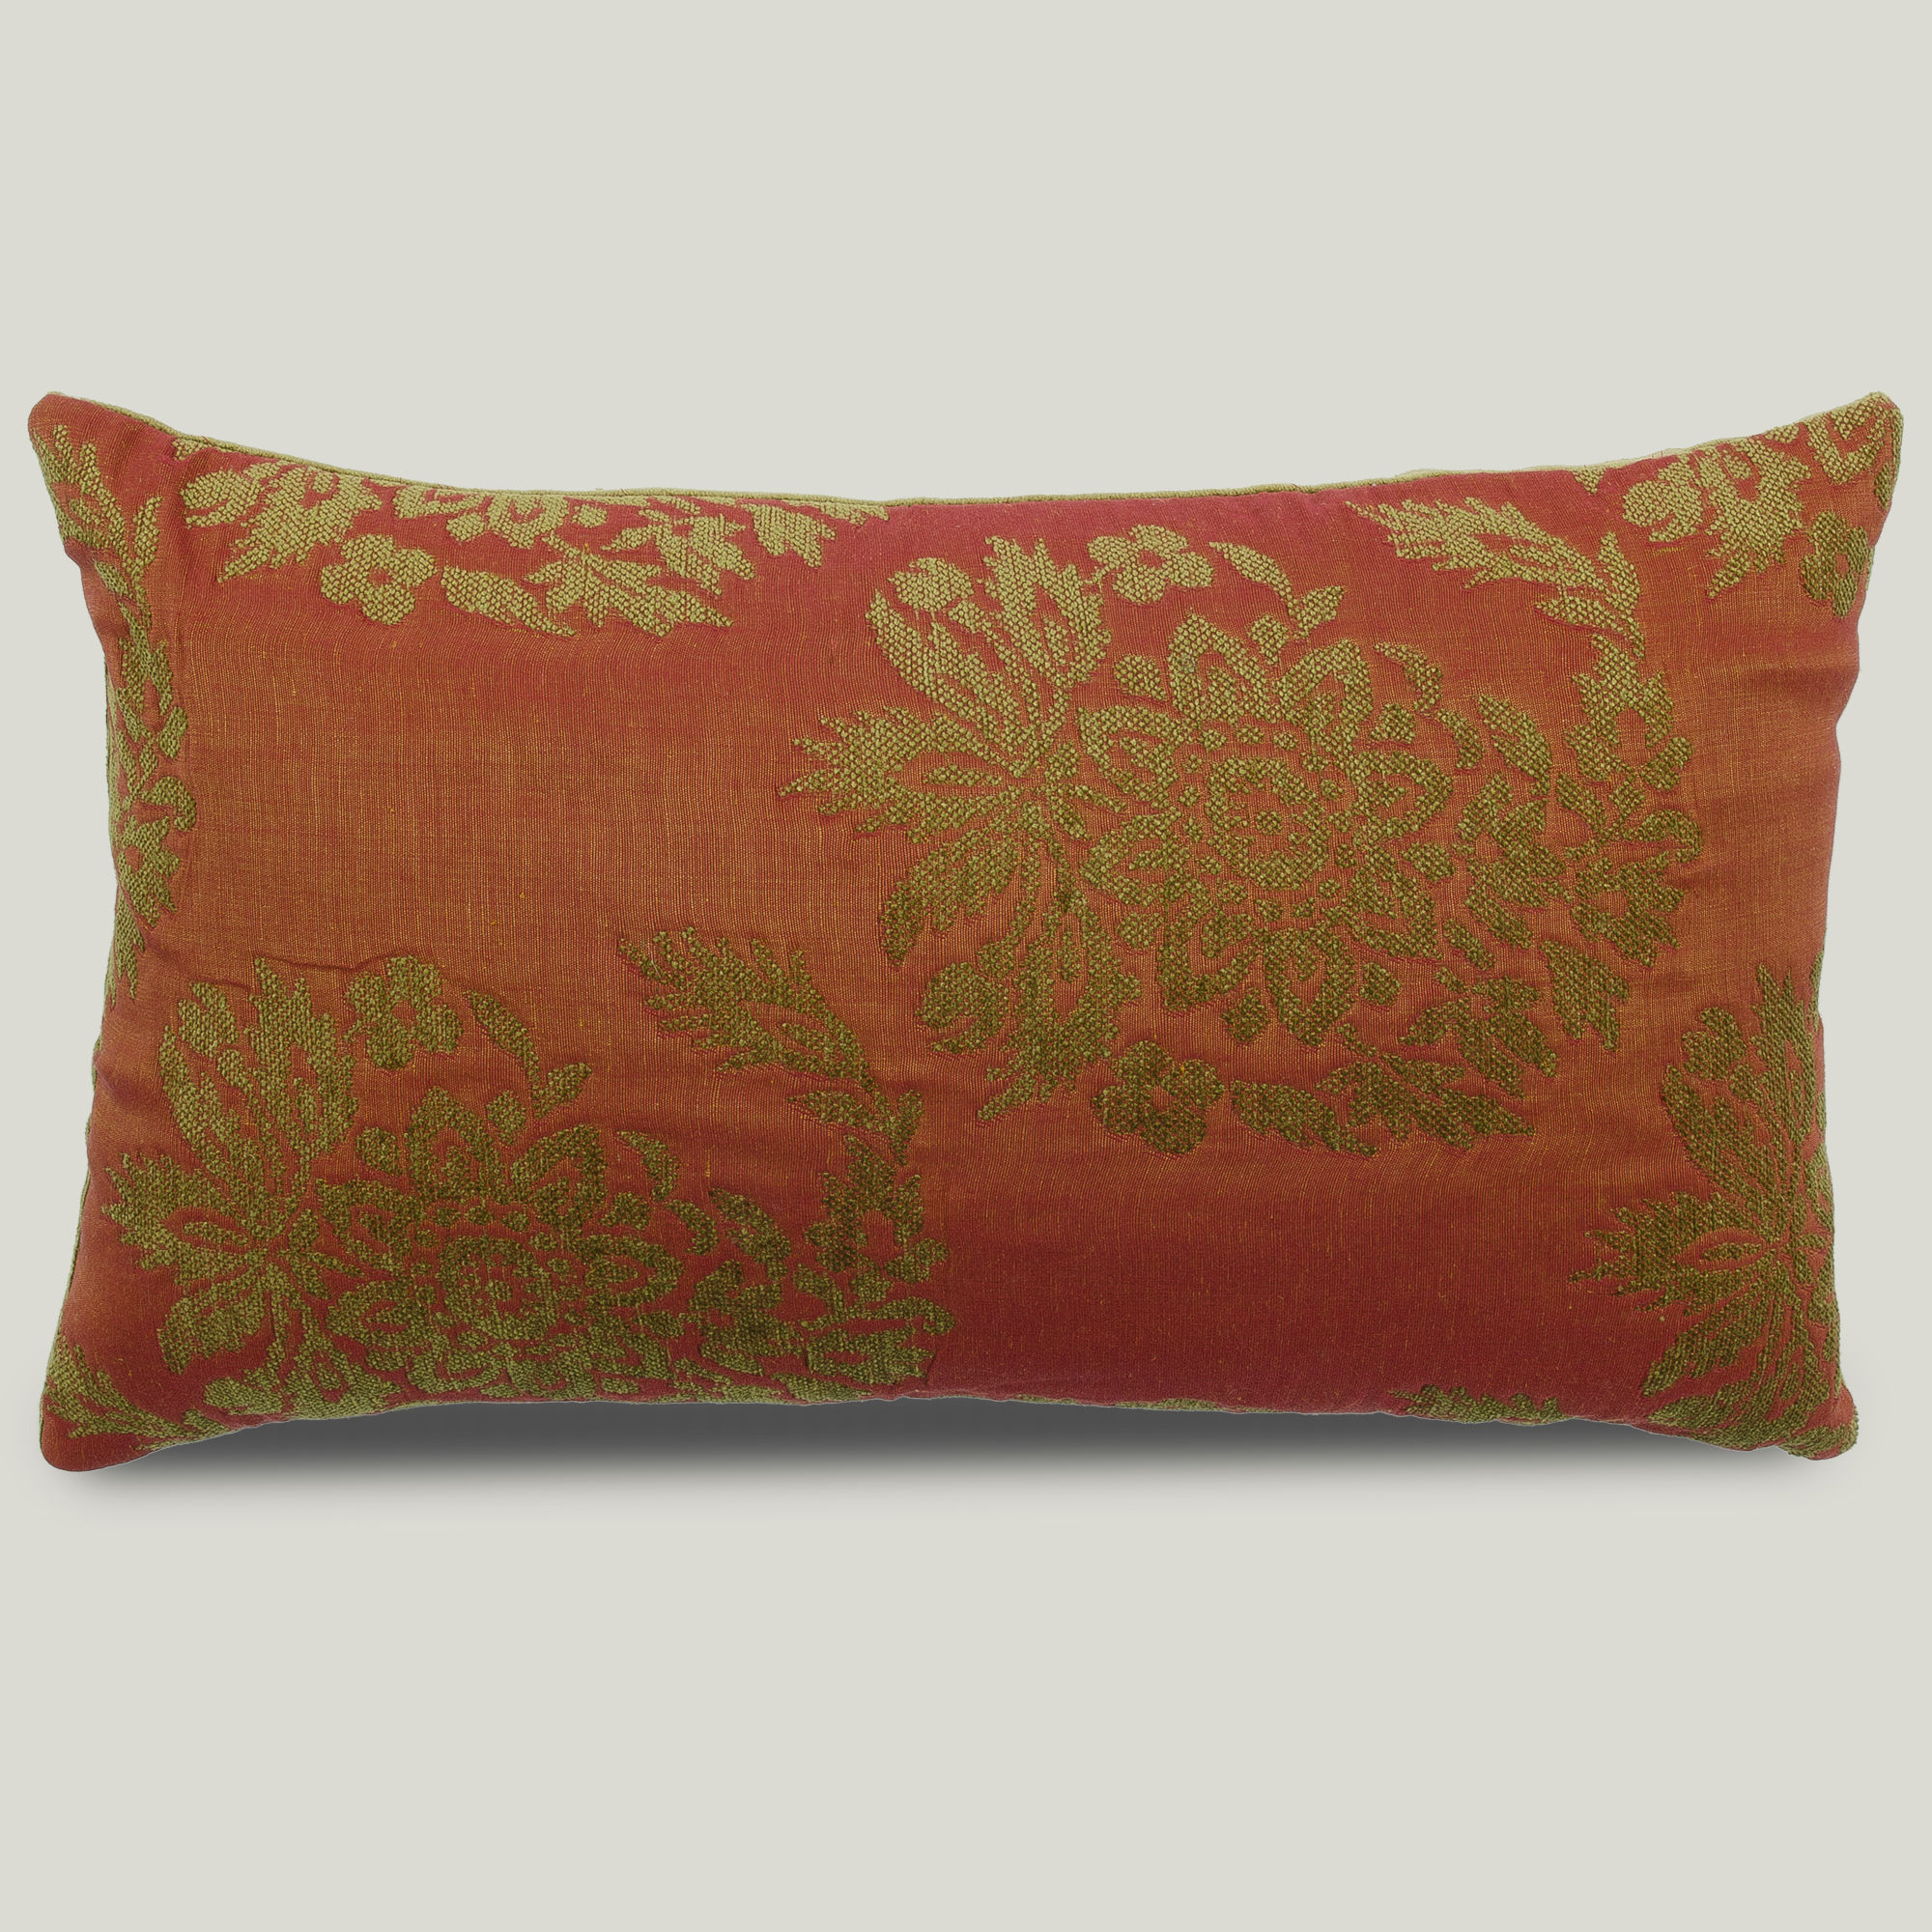 12 Quot X 20 Quot Designer Orange Decorative Throw Pillow Cover